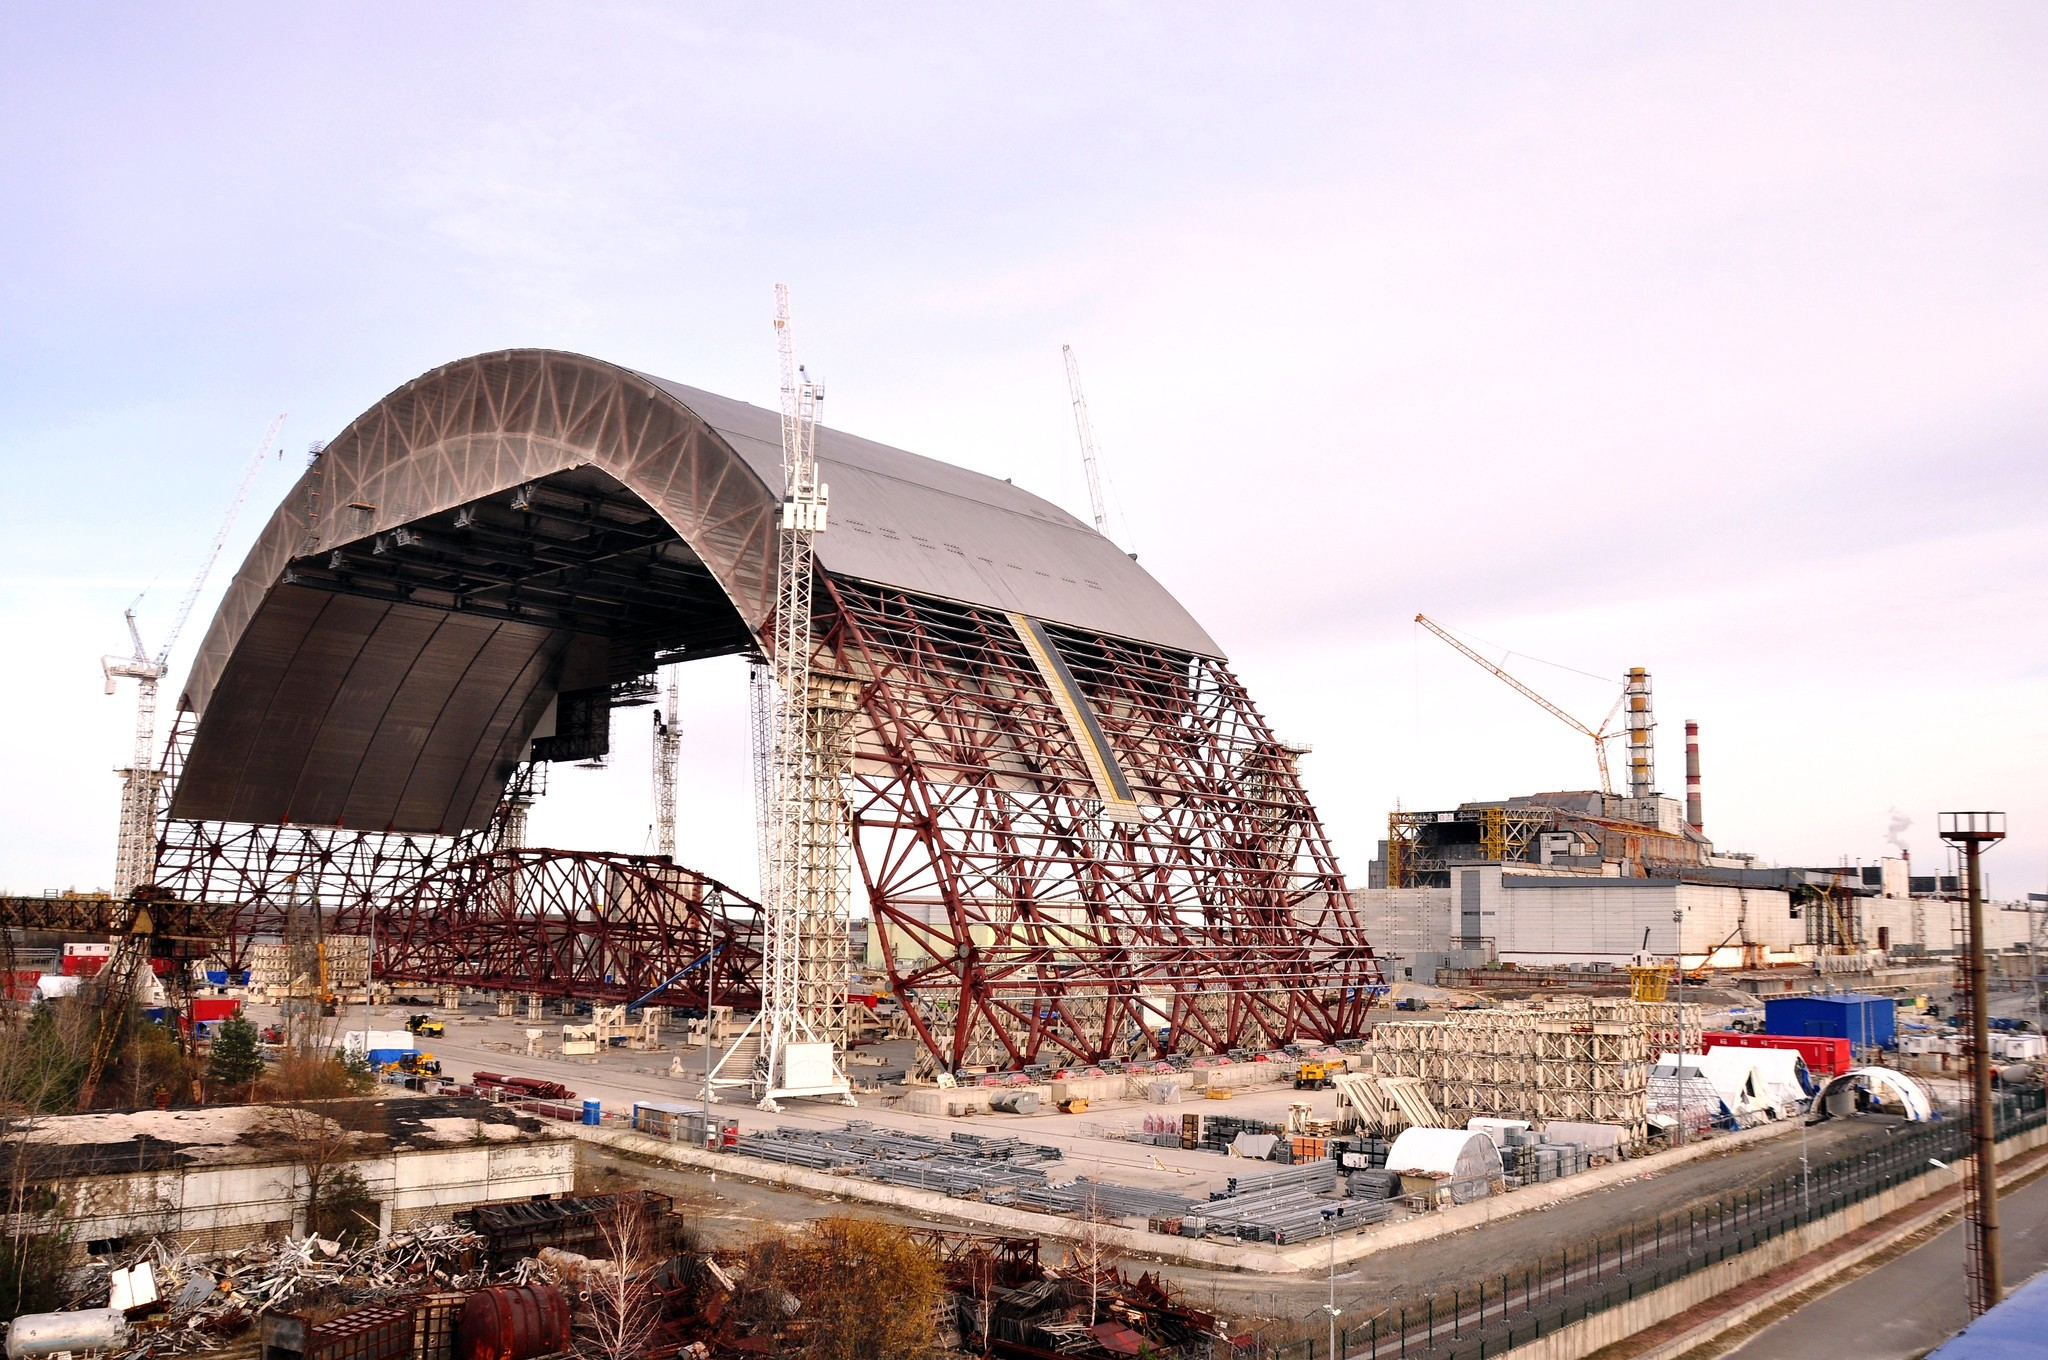 Nearly Three Decades Later, the Chernobyl Site is Contained